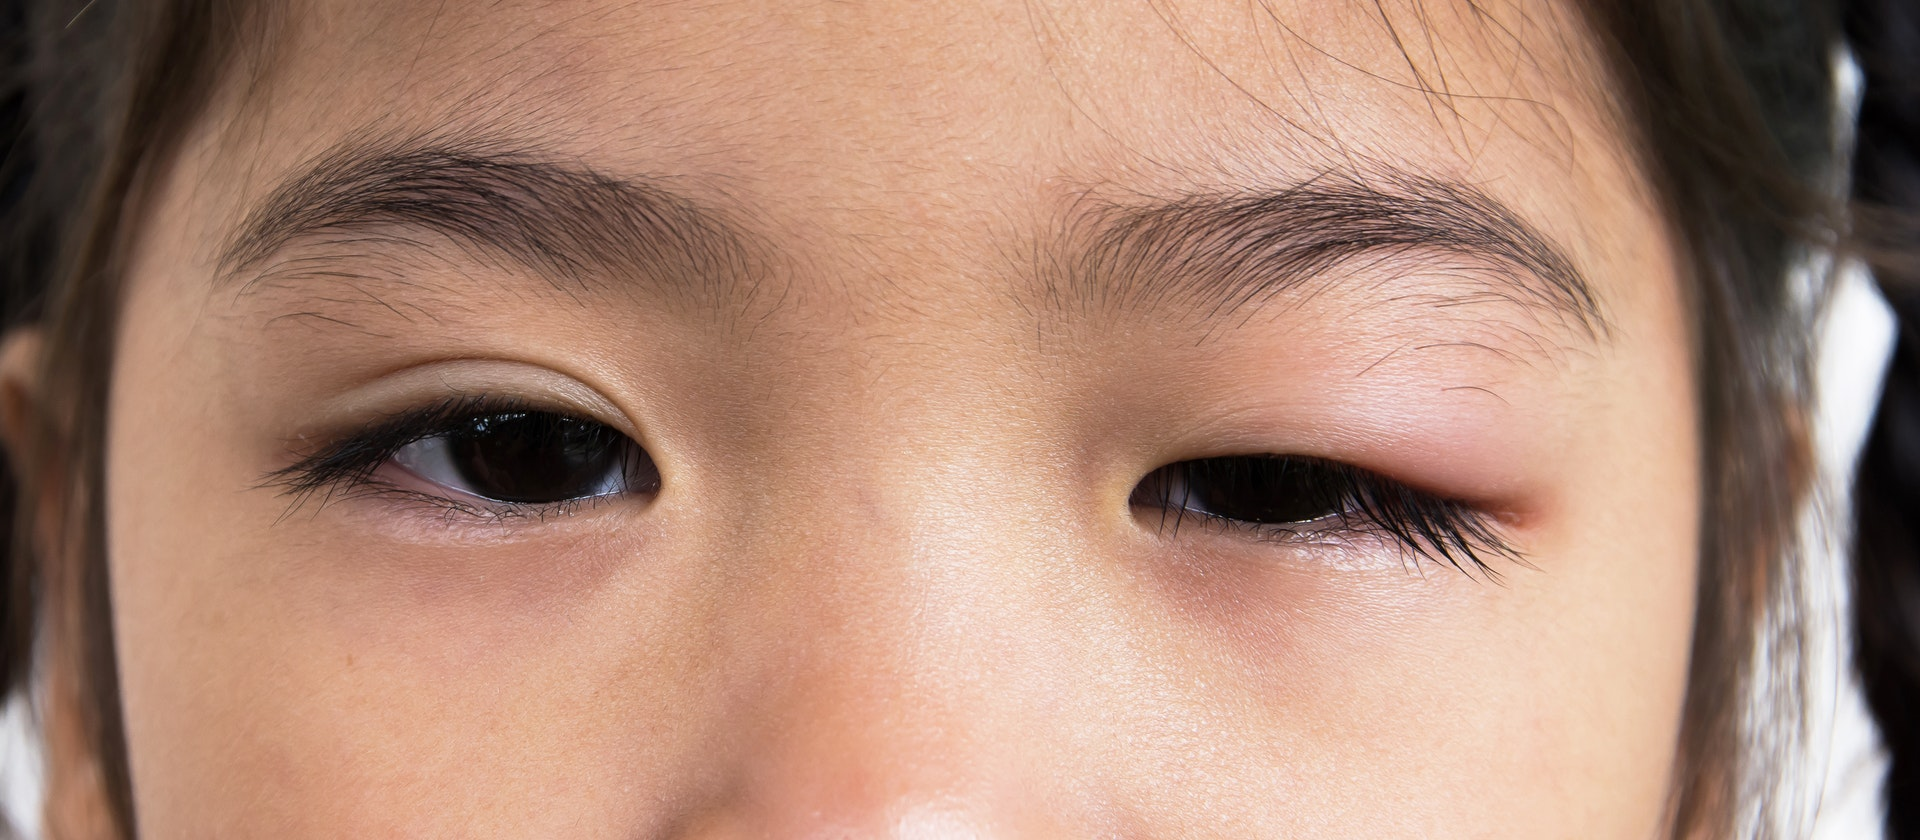 Swollen Upper Eyelids